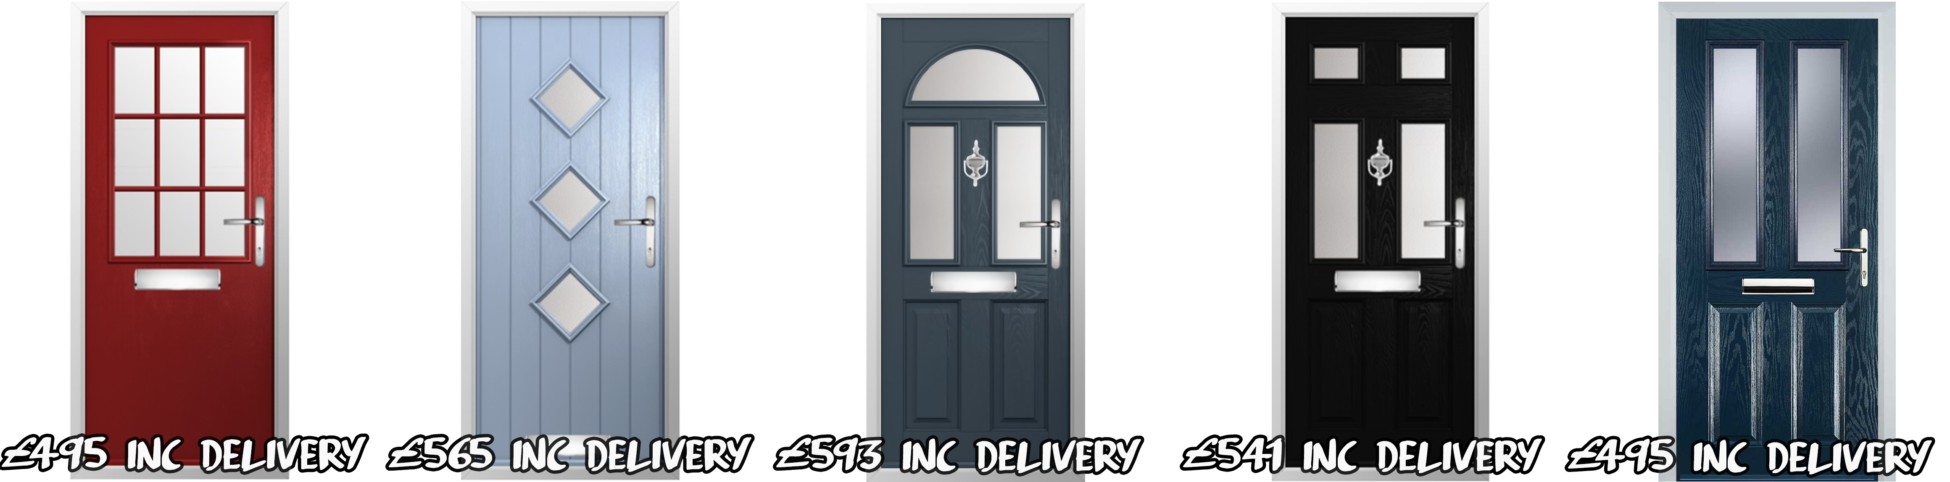 Door Stop Composite Door Offer